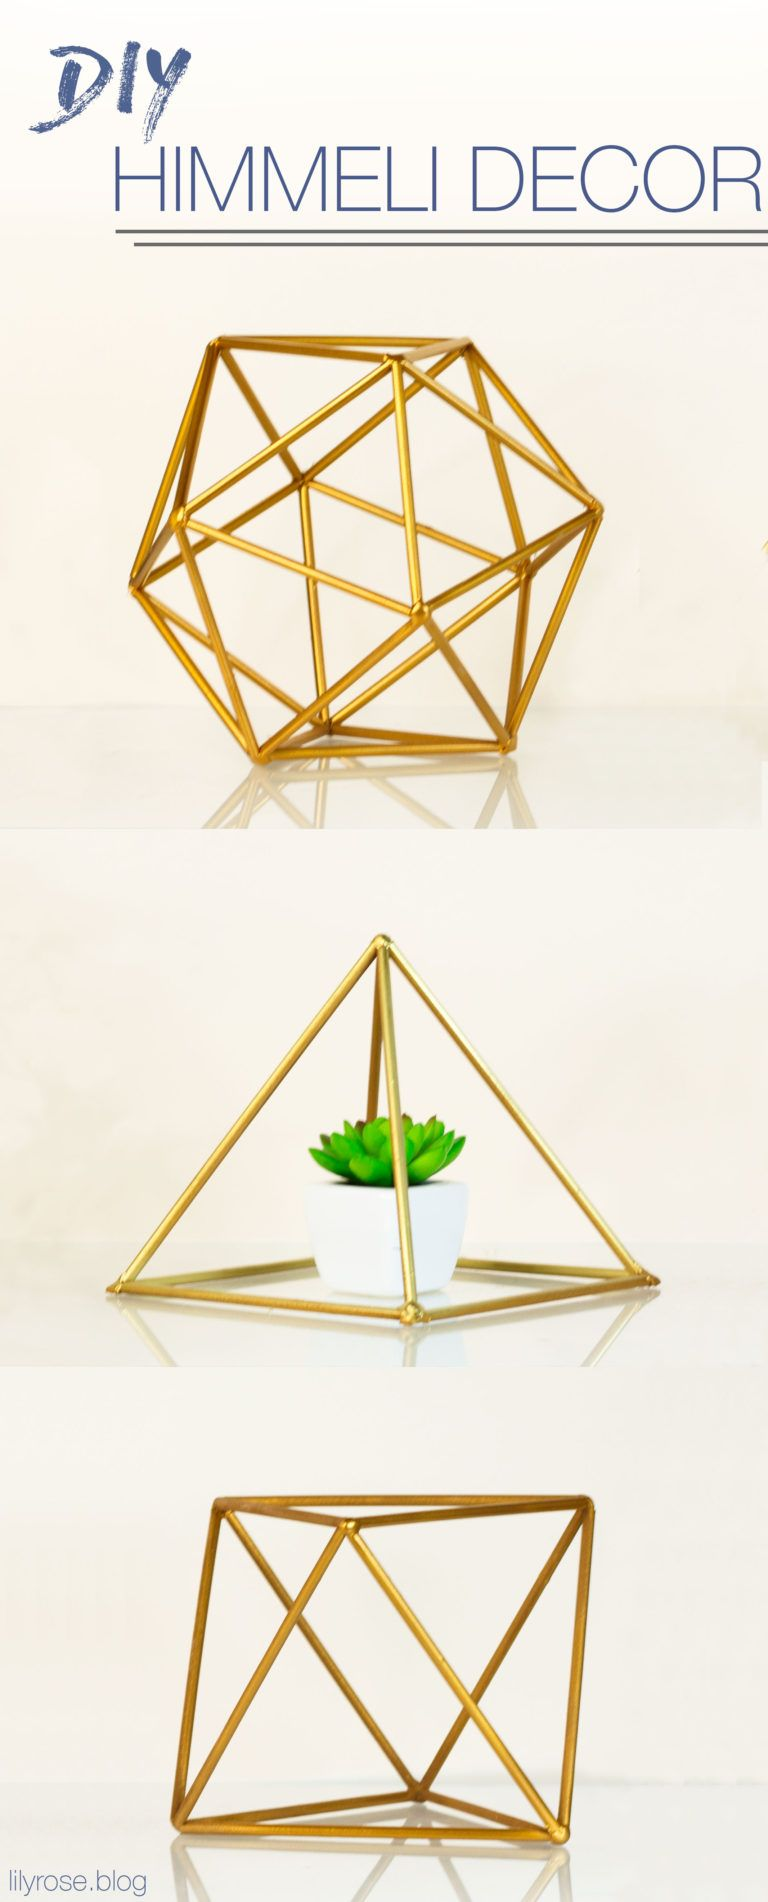 Diy Geometric Room Decor Himmeli Orbs With Straws Lily Rose